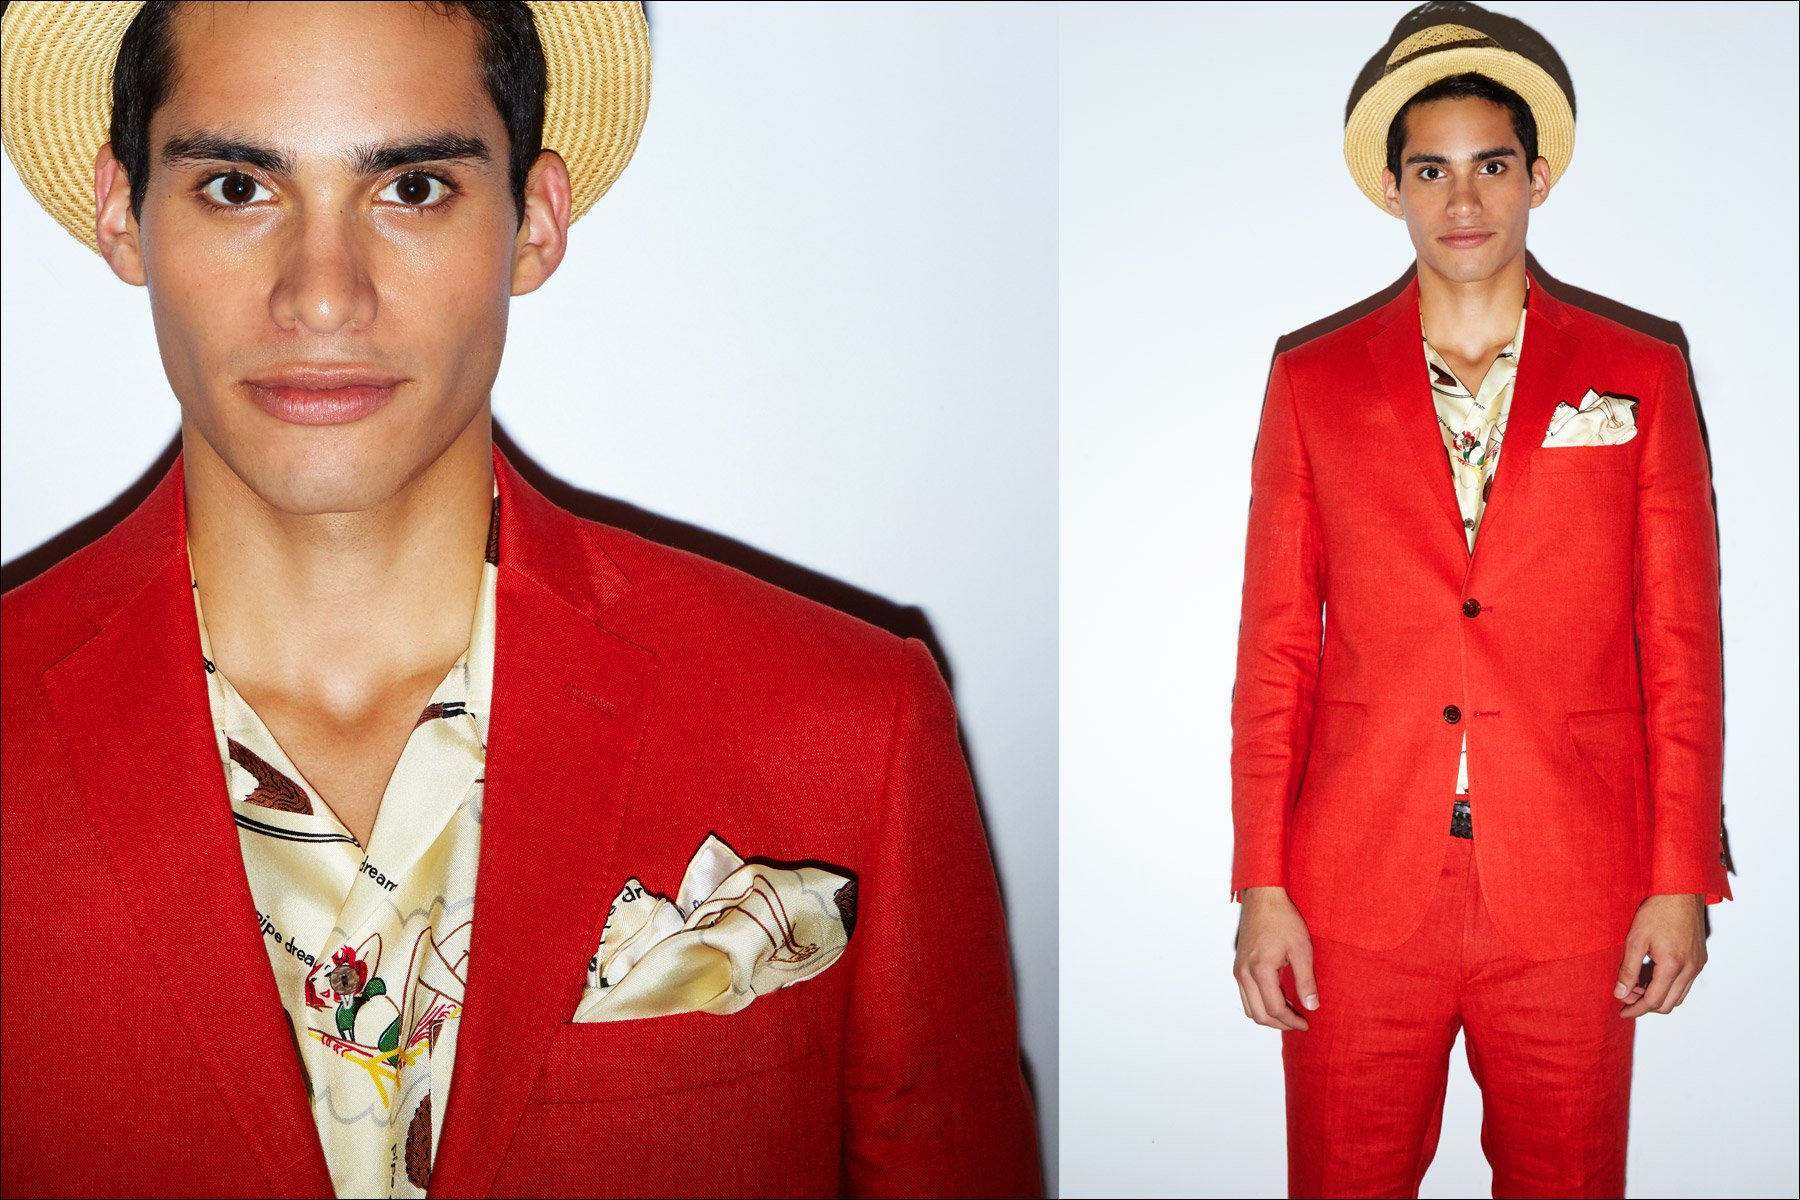 A bright red suit on a male model for Spring 2018, by menswear designer David Hart. Photography by Alexander Thompson for Ponyboy magazine New York.